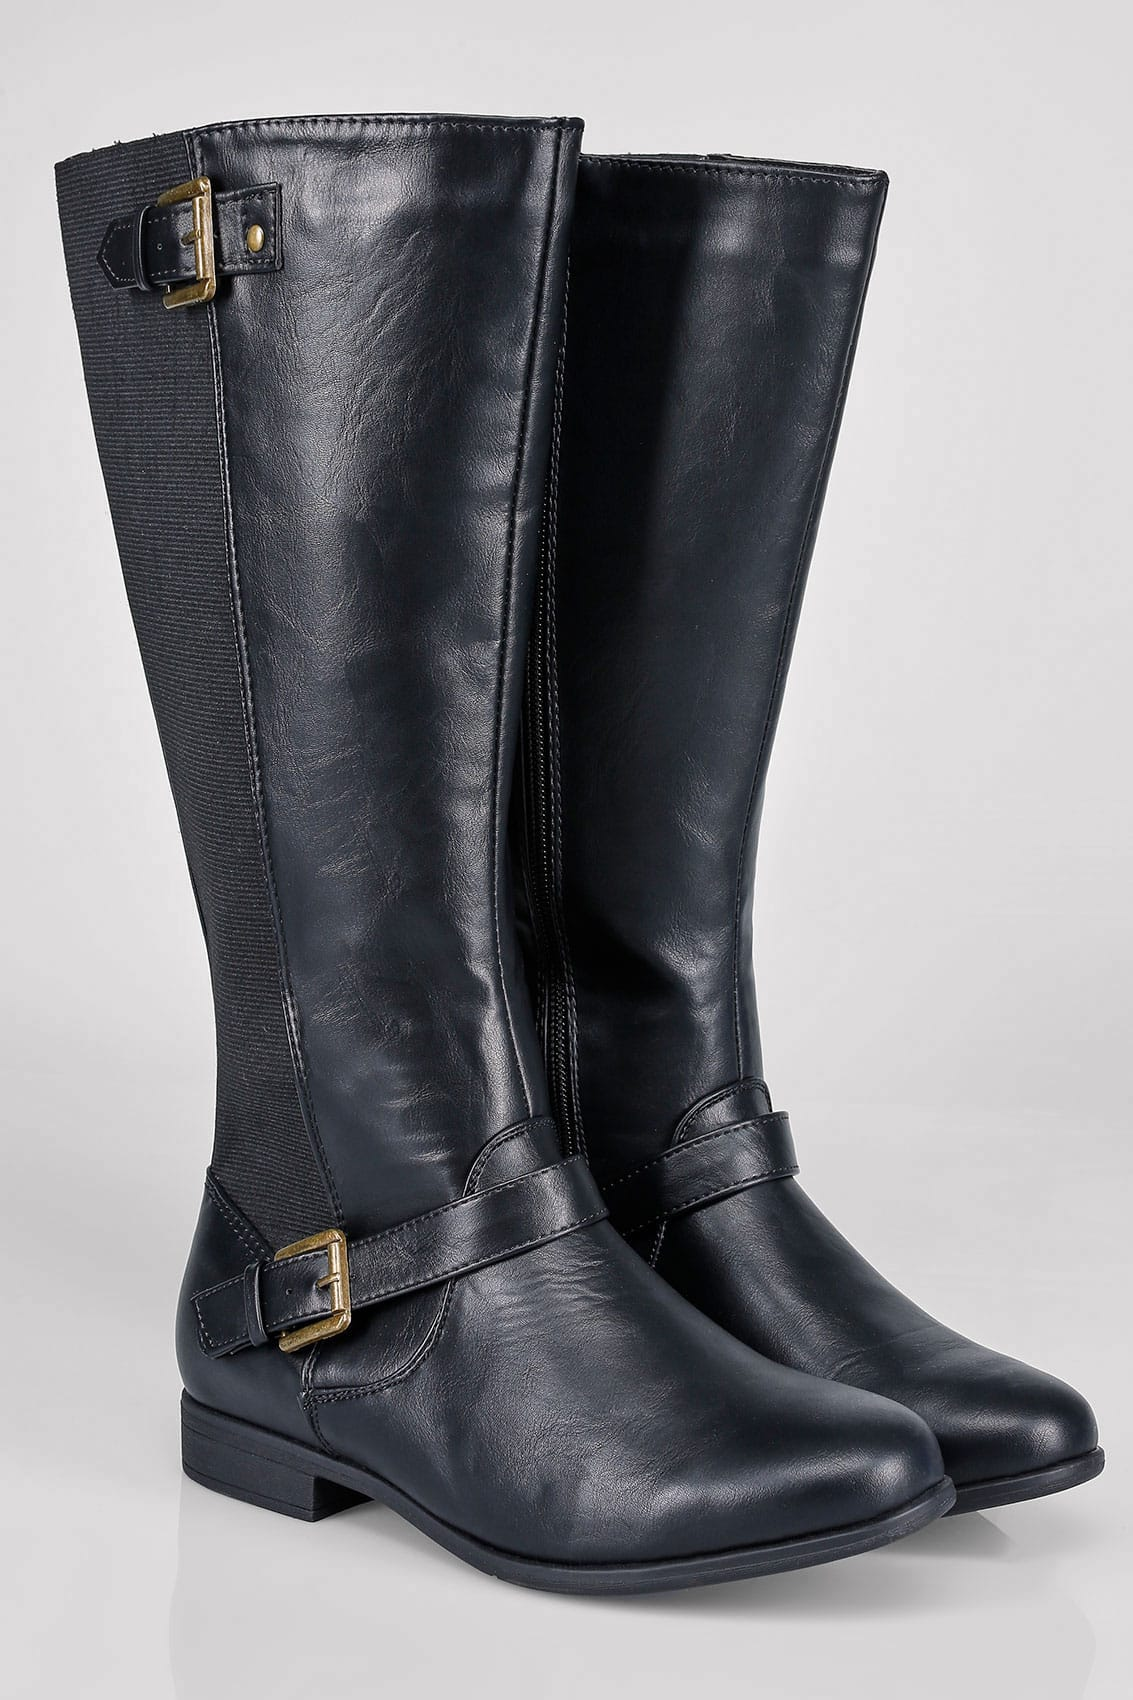 Black Knee High Riding Boots With Buckle Detail With Xl